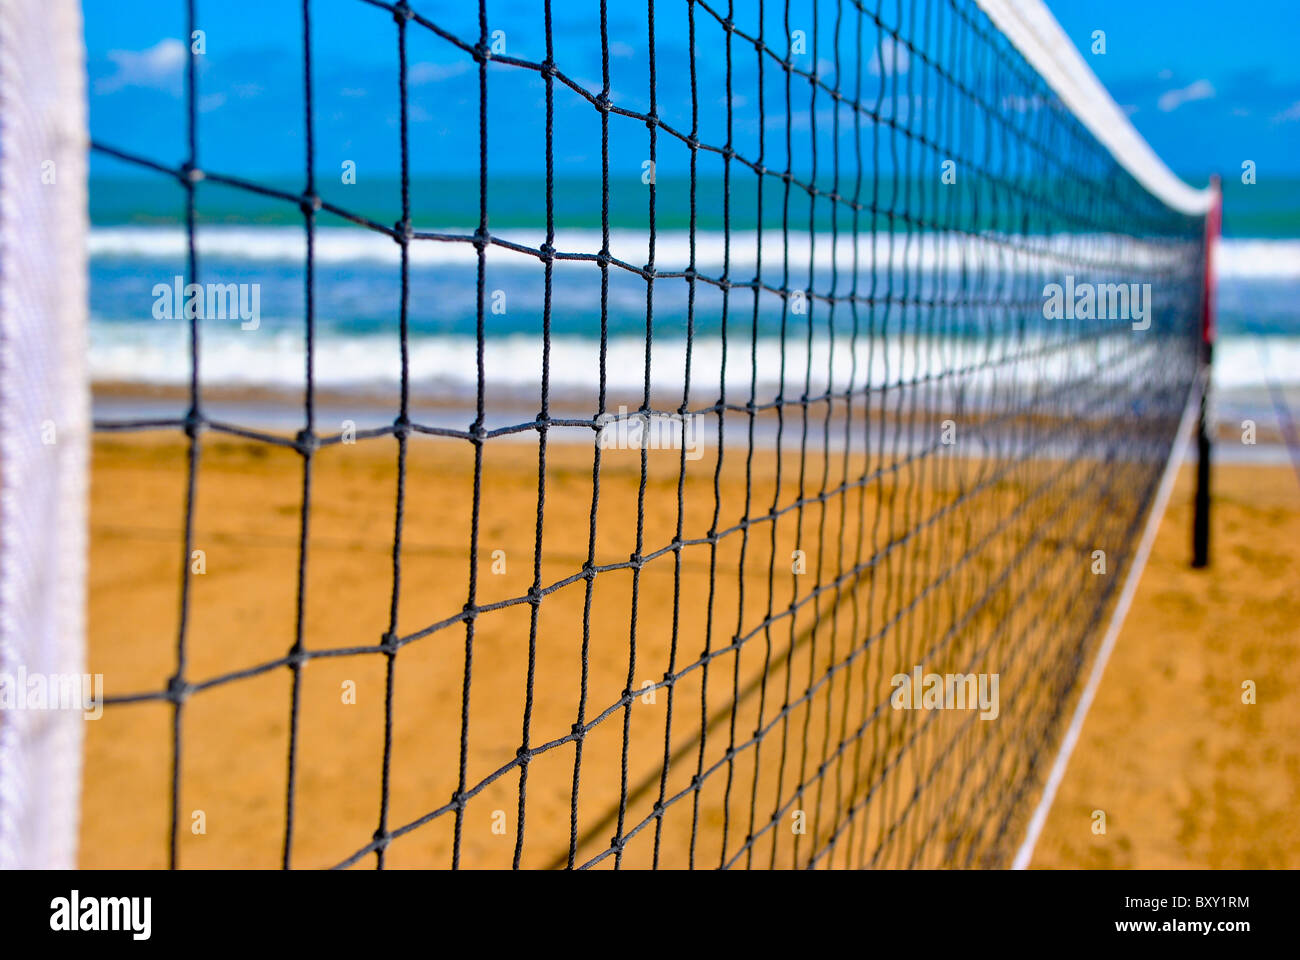 Volleyball net near the ocean. - Stock Image